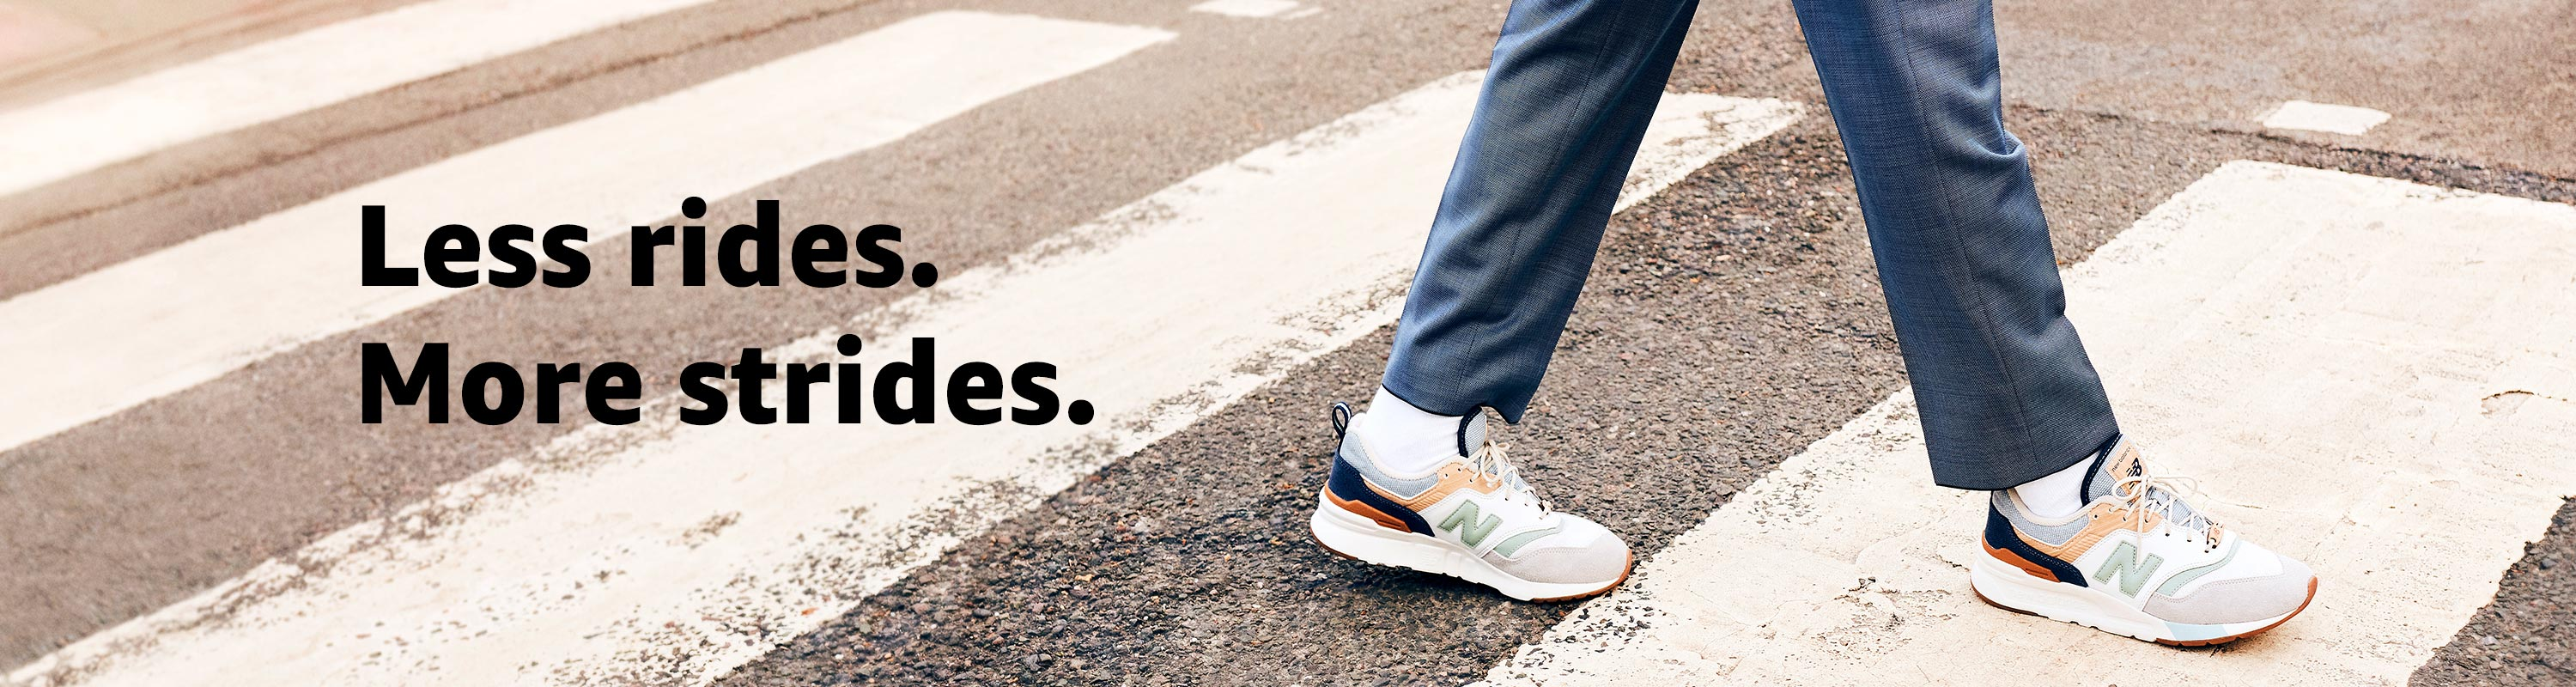 Less Rides. More Strides.